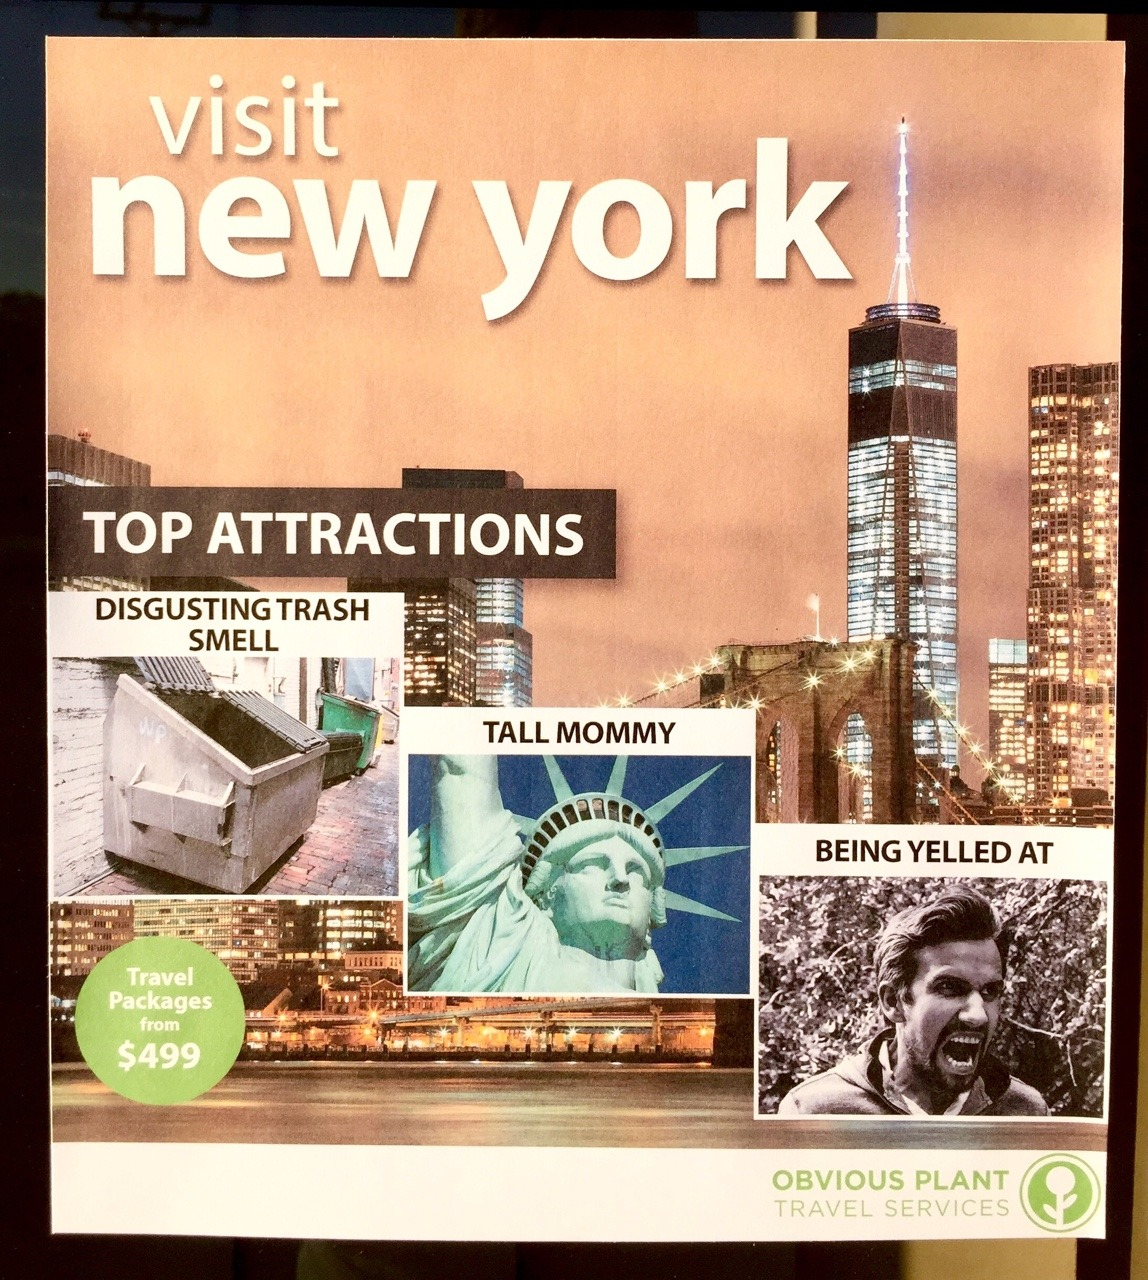 Fake State Tourism Flyers